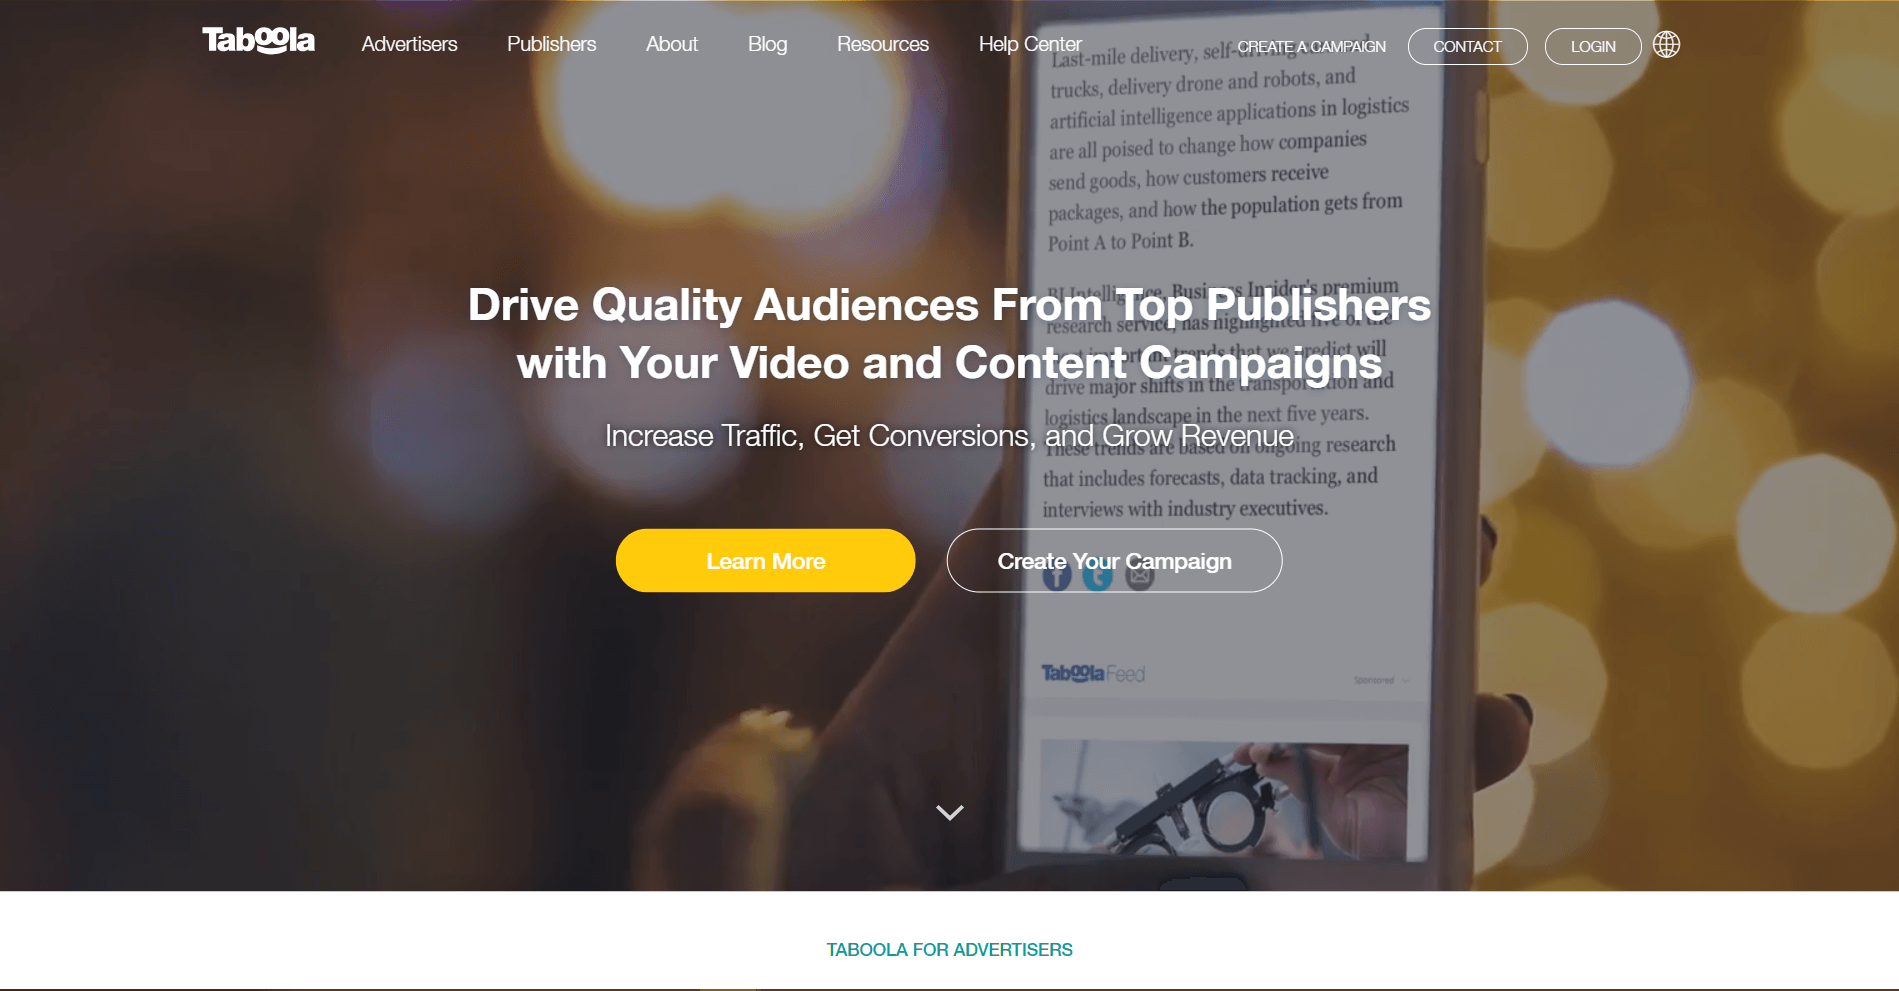 taboola Content Promotion Platforms and Tools